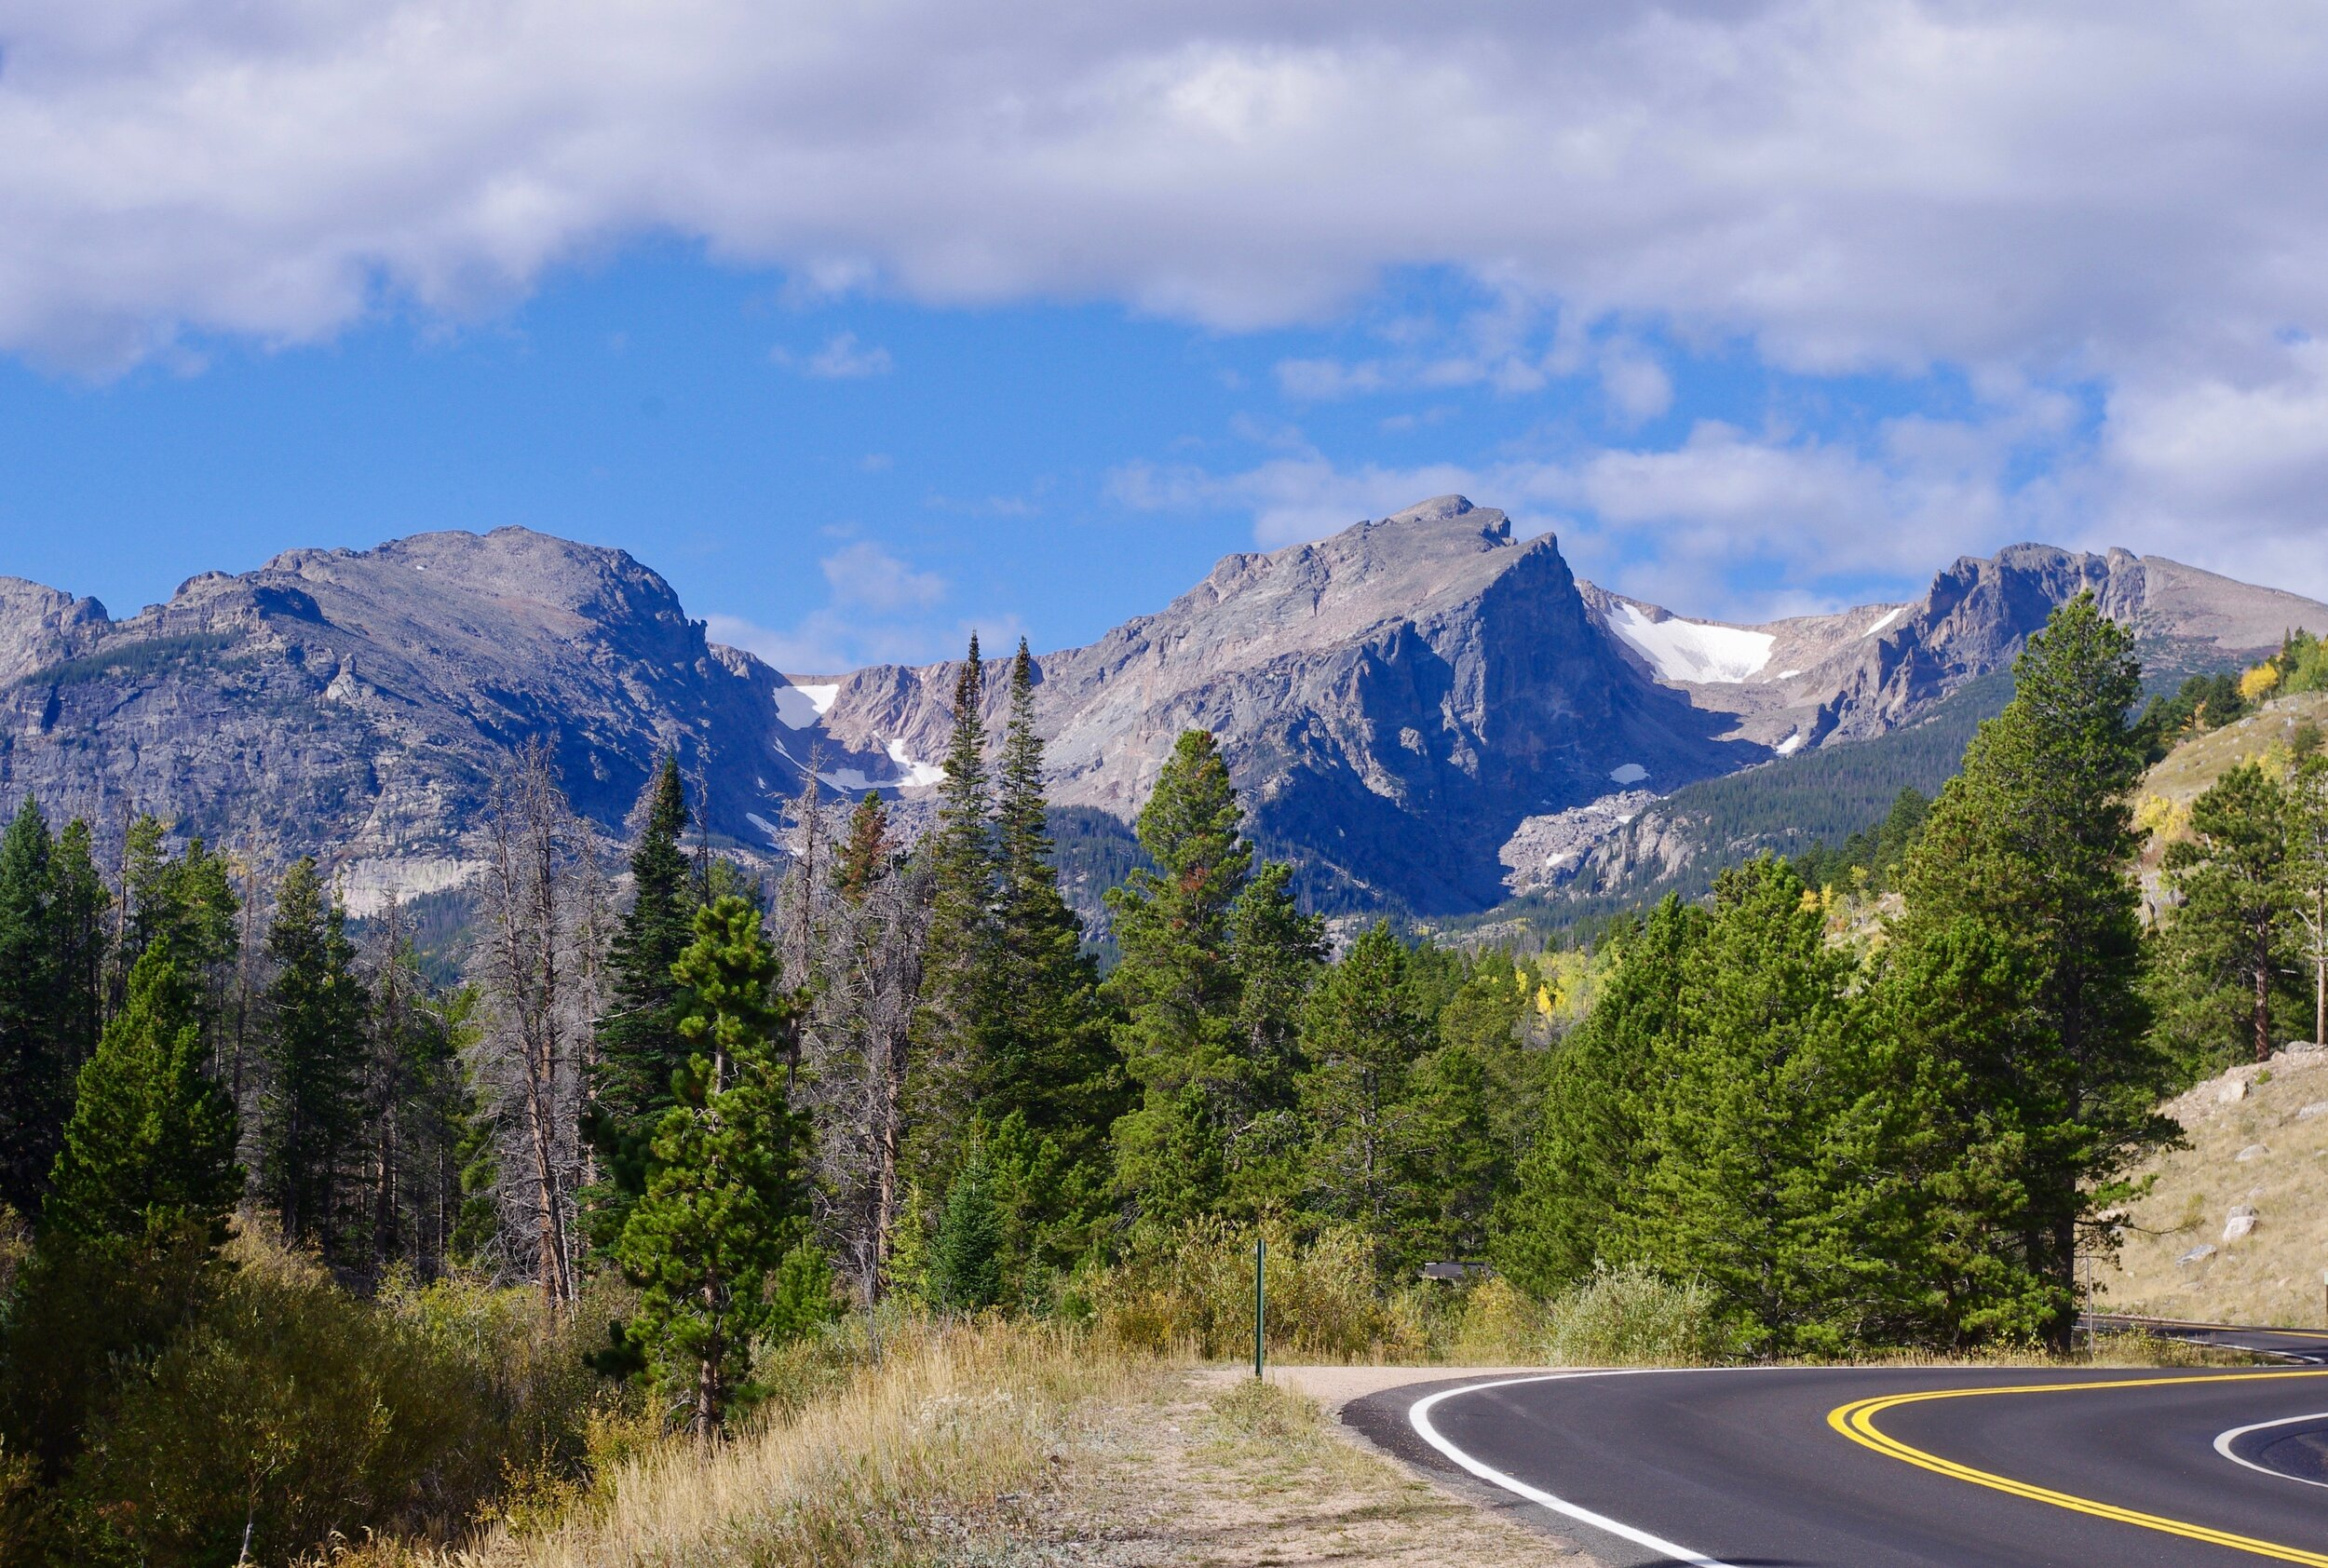 Biking to Bear Lake. The road looks so nice and flat here that you would never imagine how steep it really is.